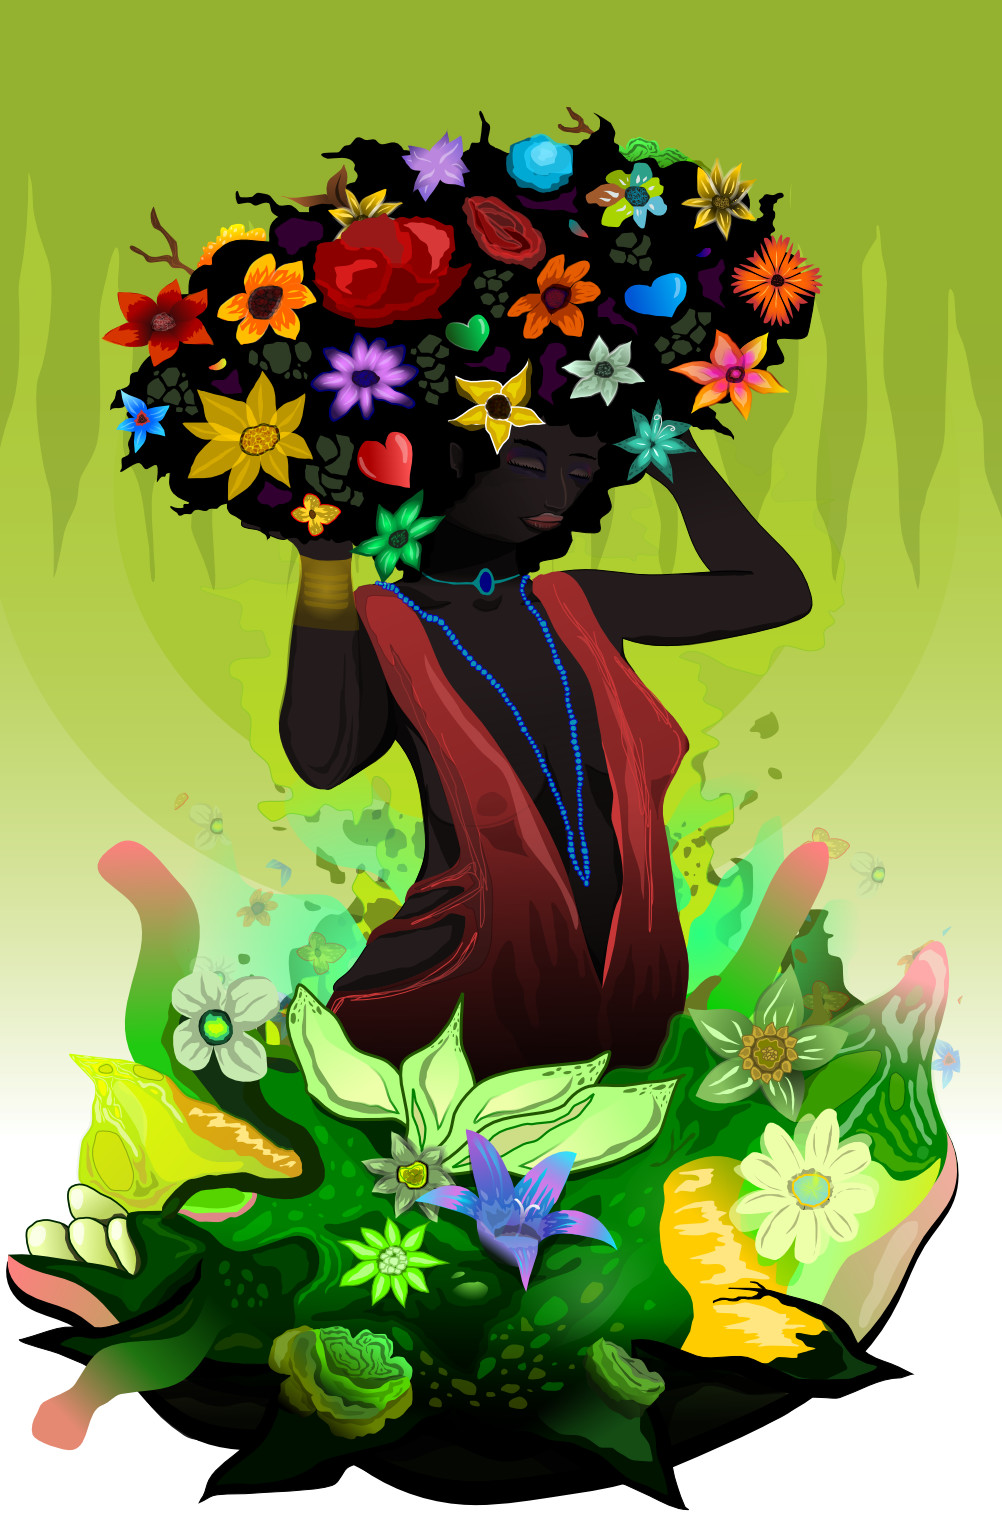 Kevin philippe afroflowers